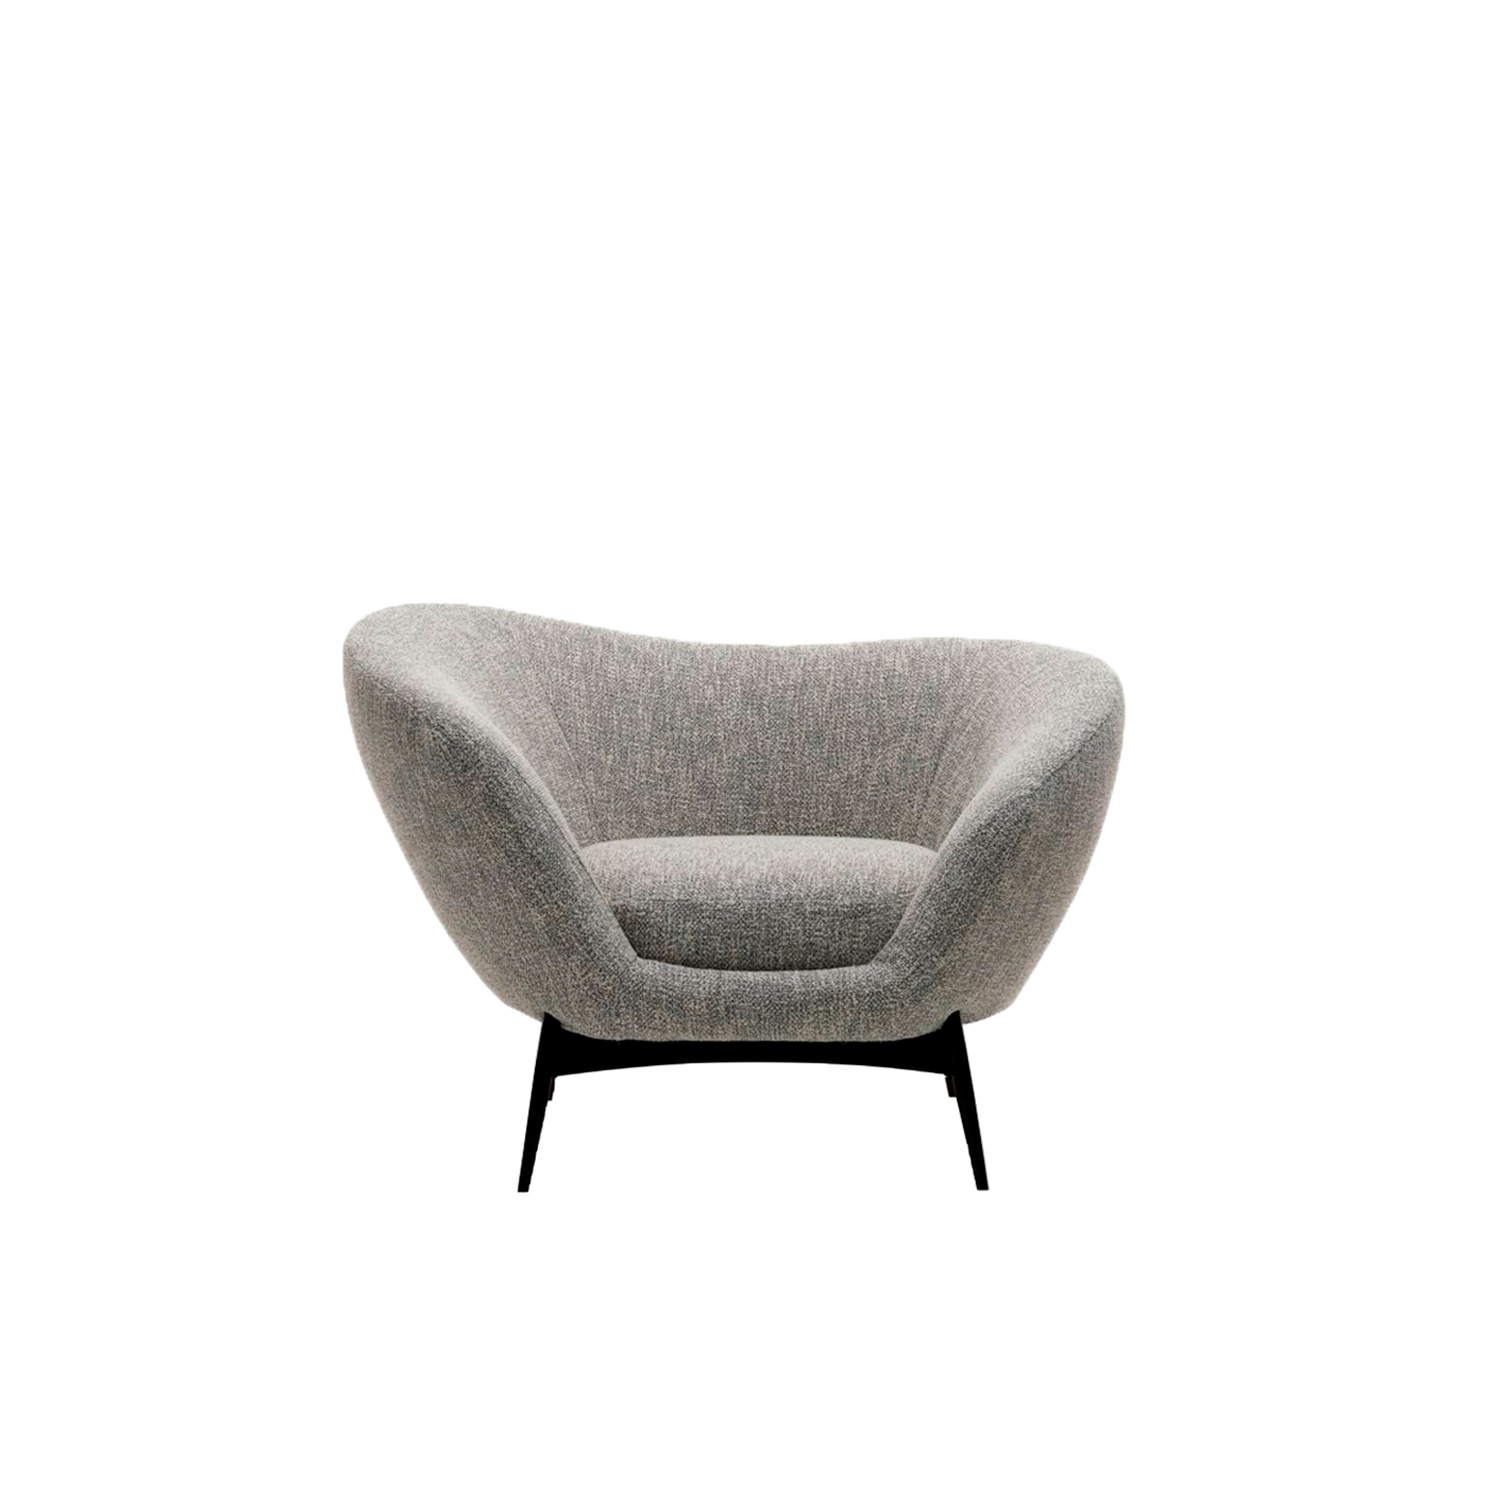 Oltremare Lounge Armchair - The asymmetric curves are the inspirations for the Oltremare armchair that completes the collection alongside a padded bench.‎